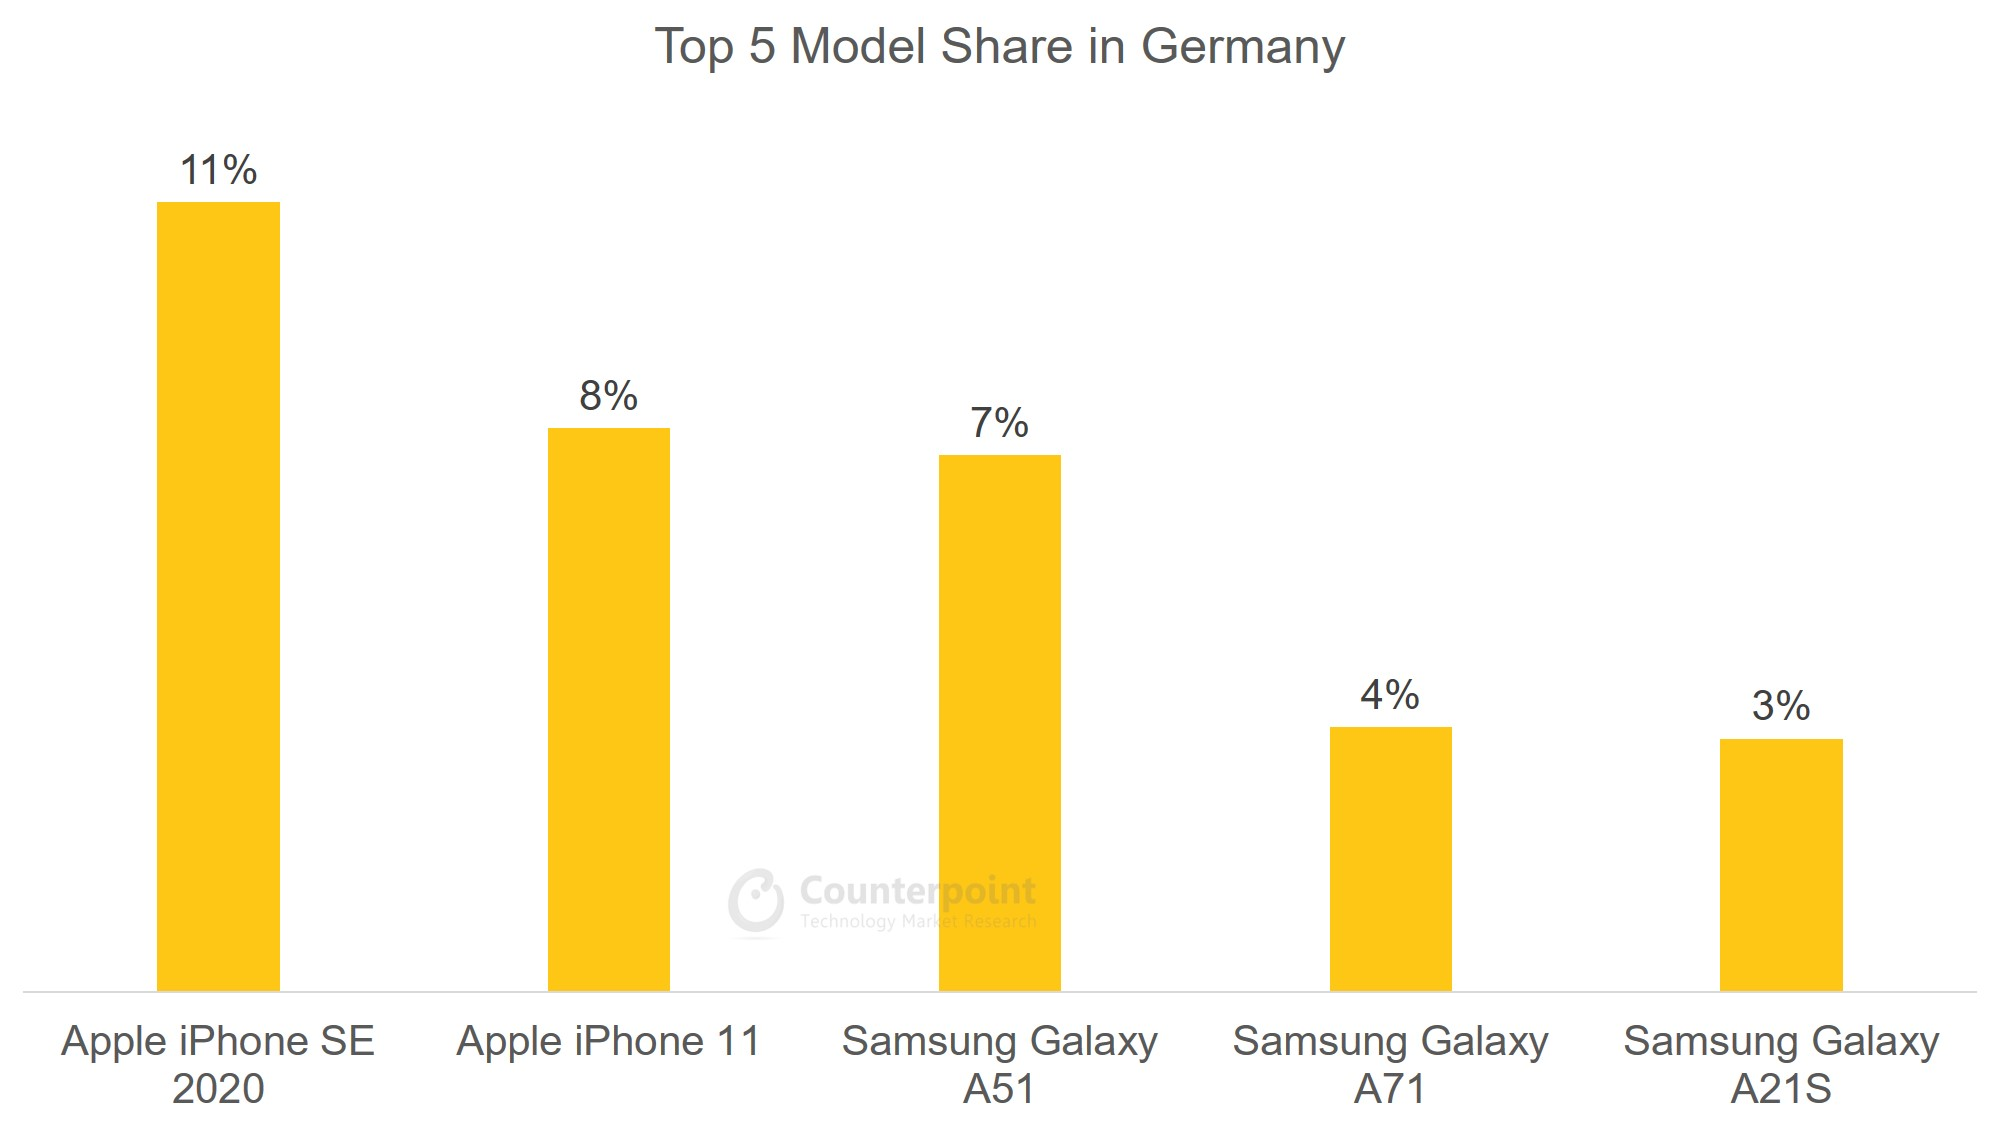 Germany - Top 5 Model Share - Jul 2020